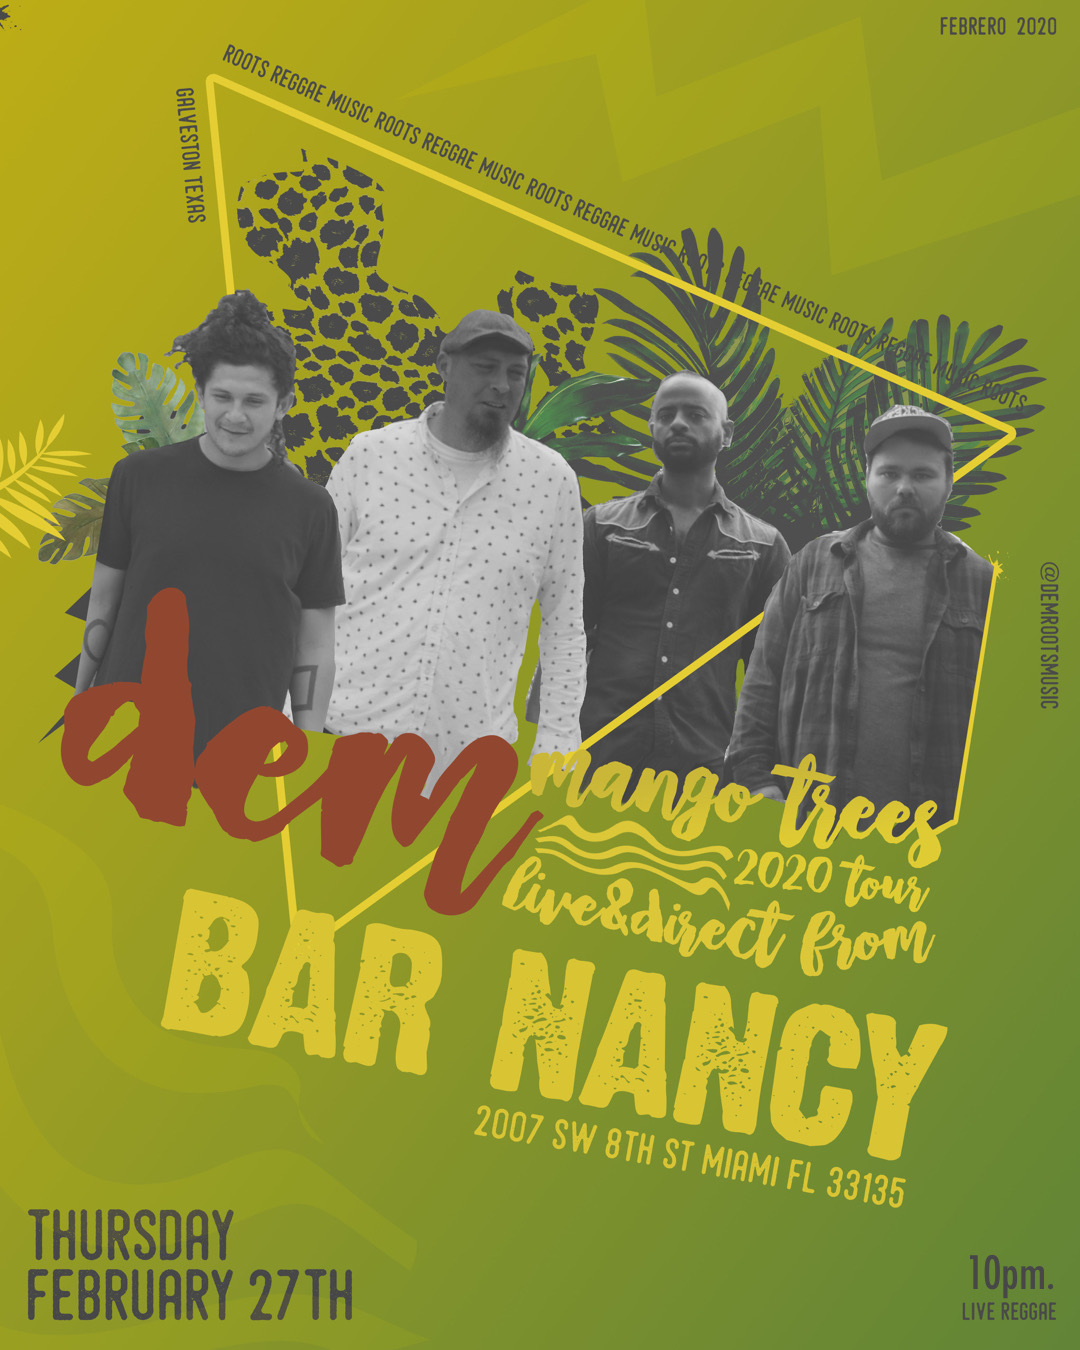 Dem at Bar Nancy - Thursday, February 27, 2020 at 8 PM